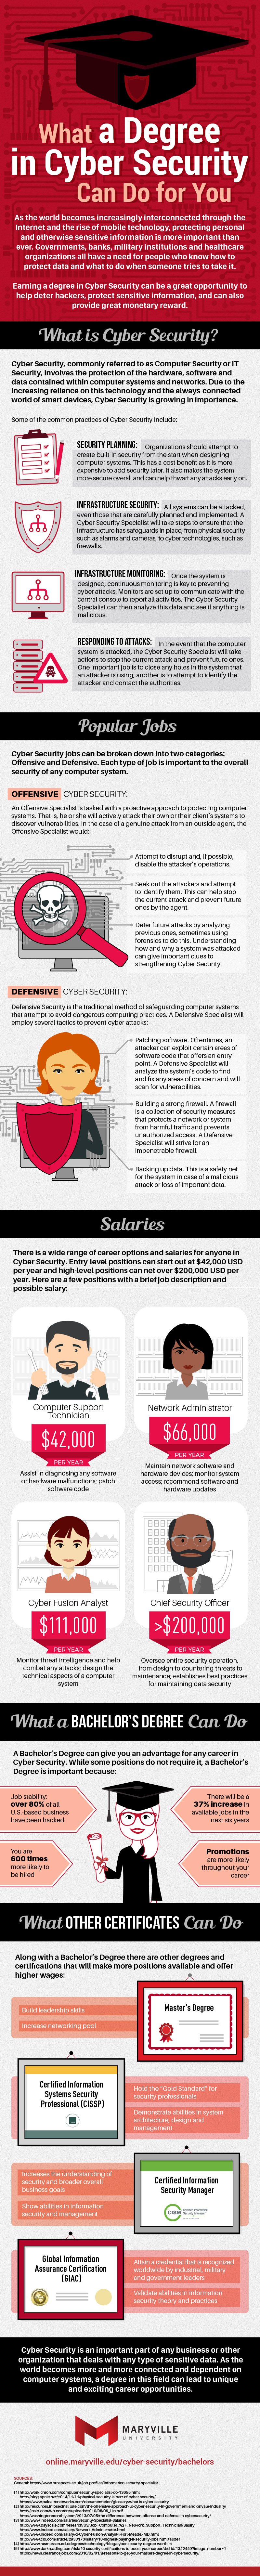 What a Degree in Cyber Security Can Do for You Infographic